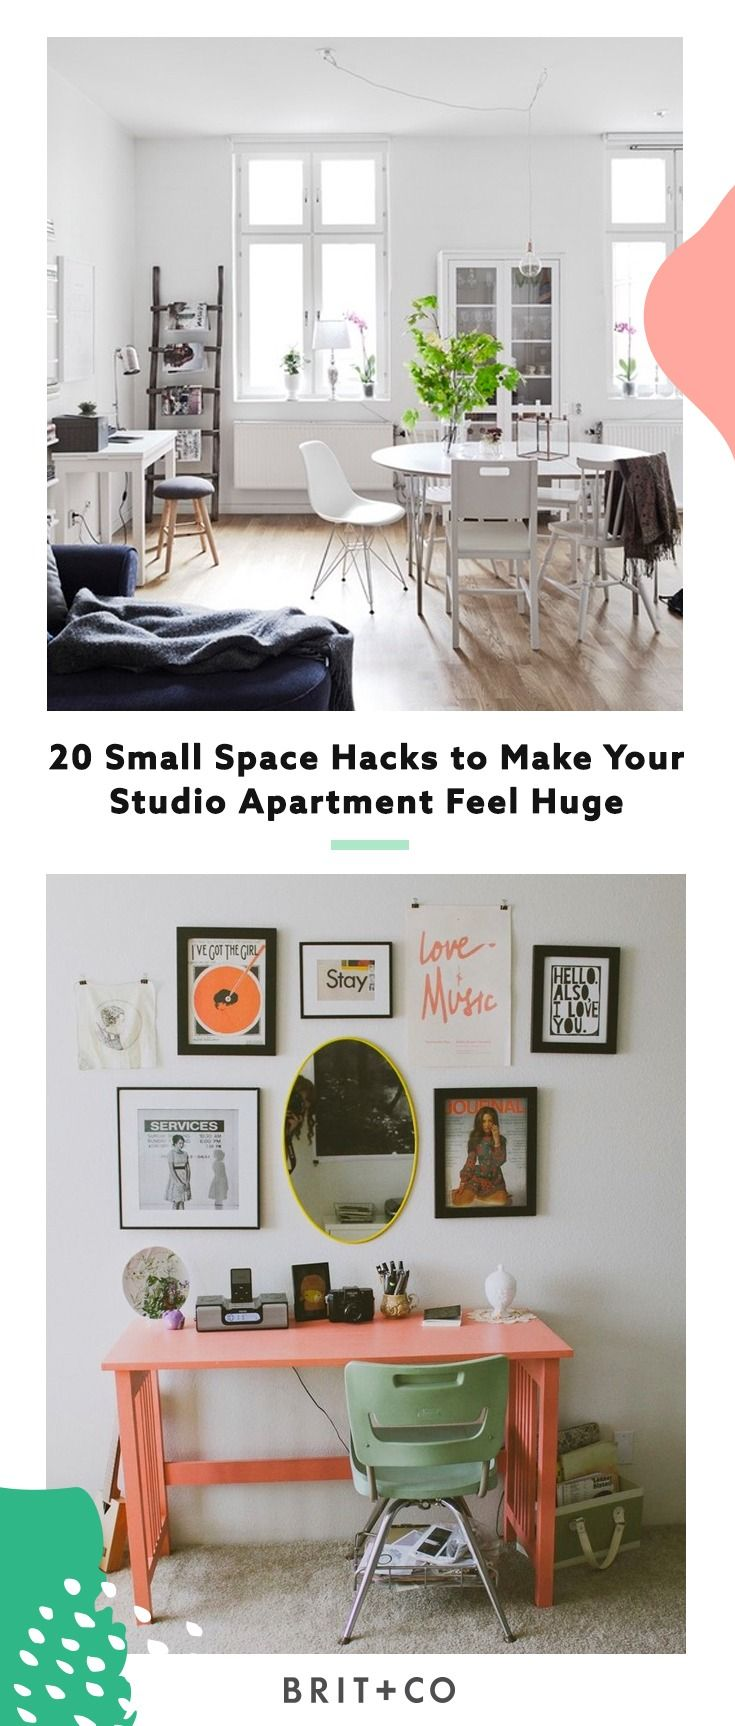 20 small space hacks to make your studio apartment feel huge.